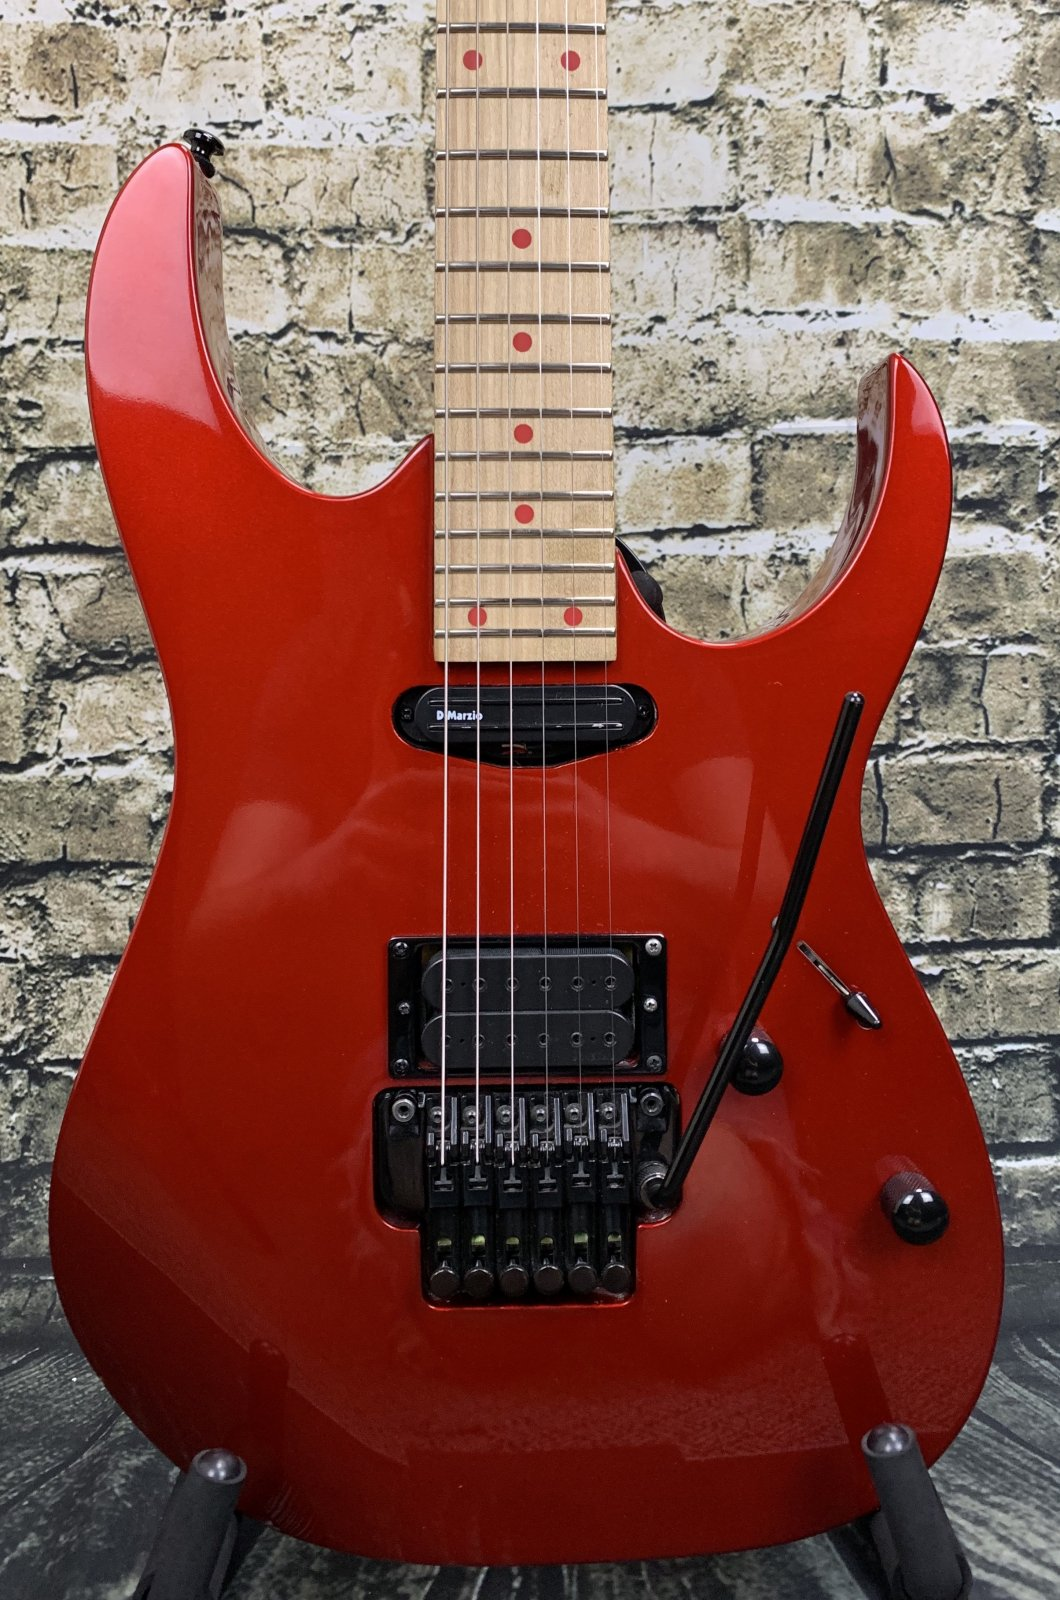 Used Ibanez RG3XXV Limited Edition 25th Anniversary Electric Guitar - Candy Apple